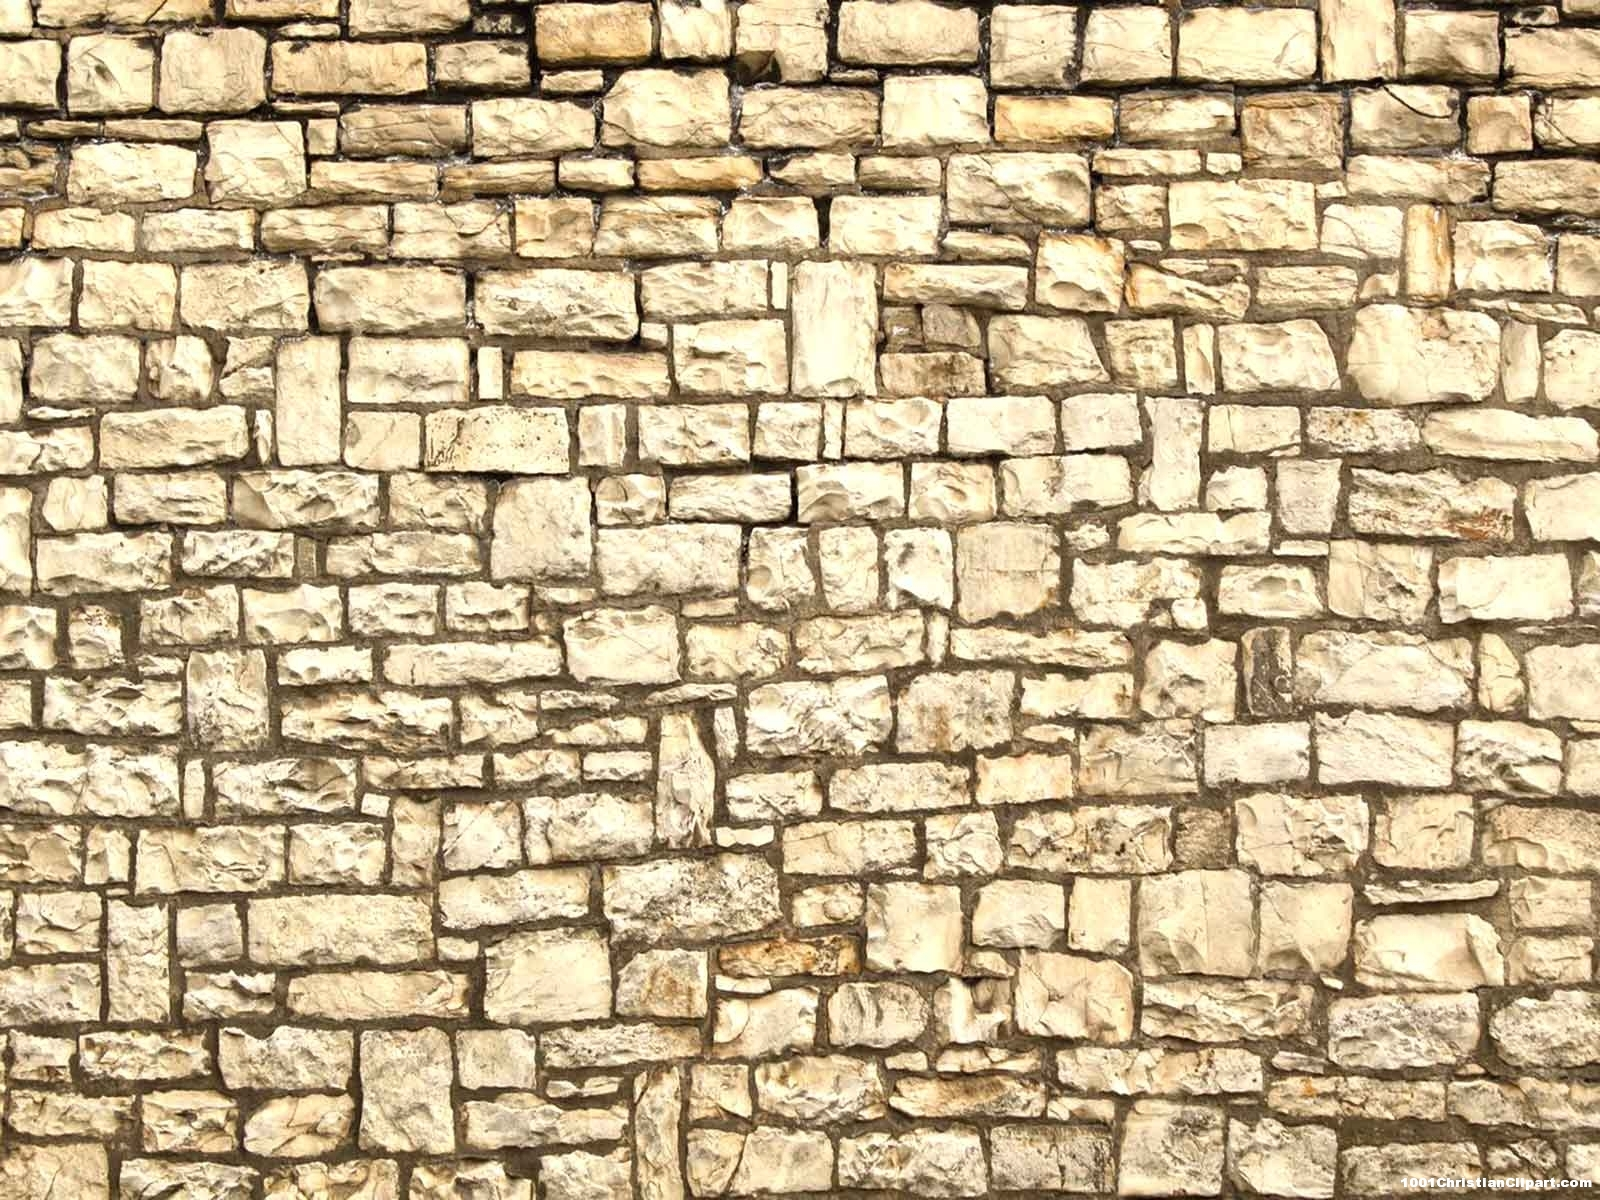 HDR Brick Wall Background